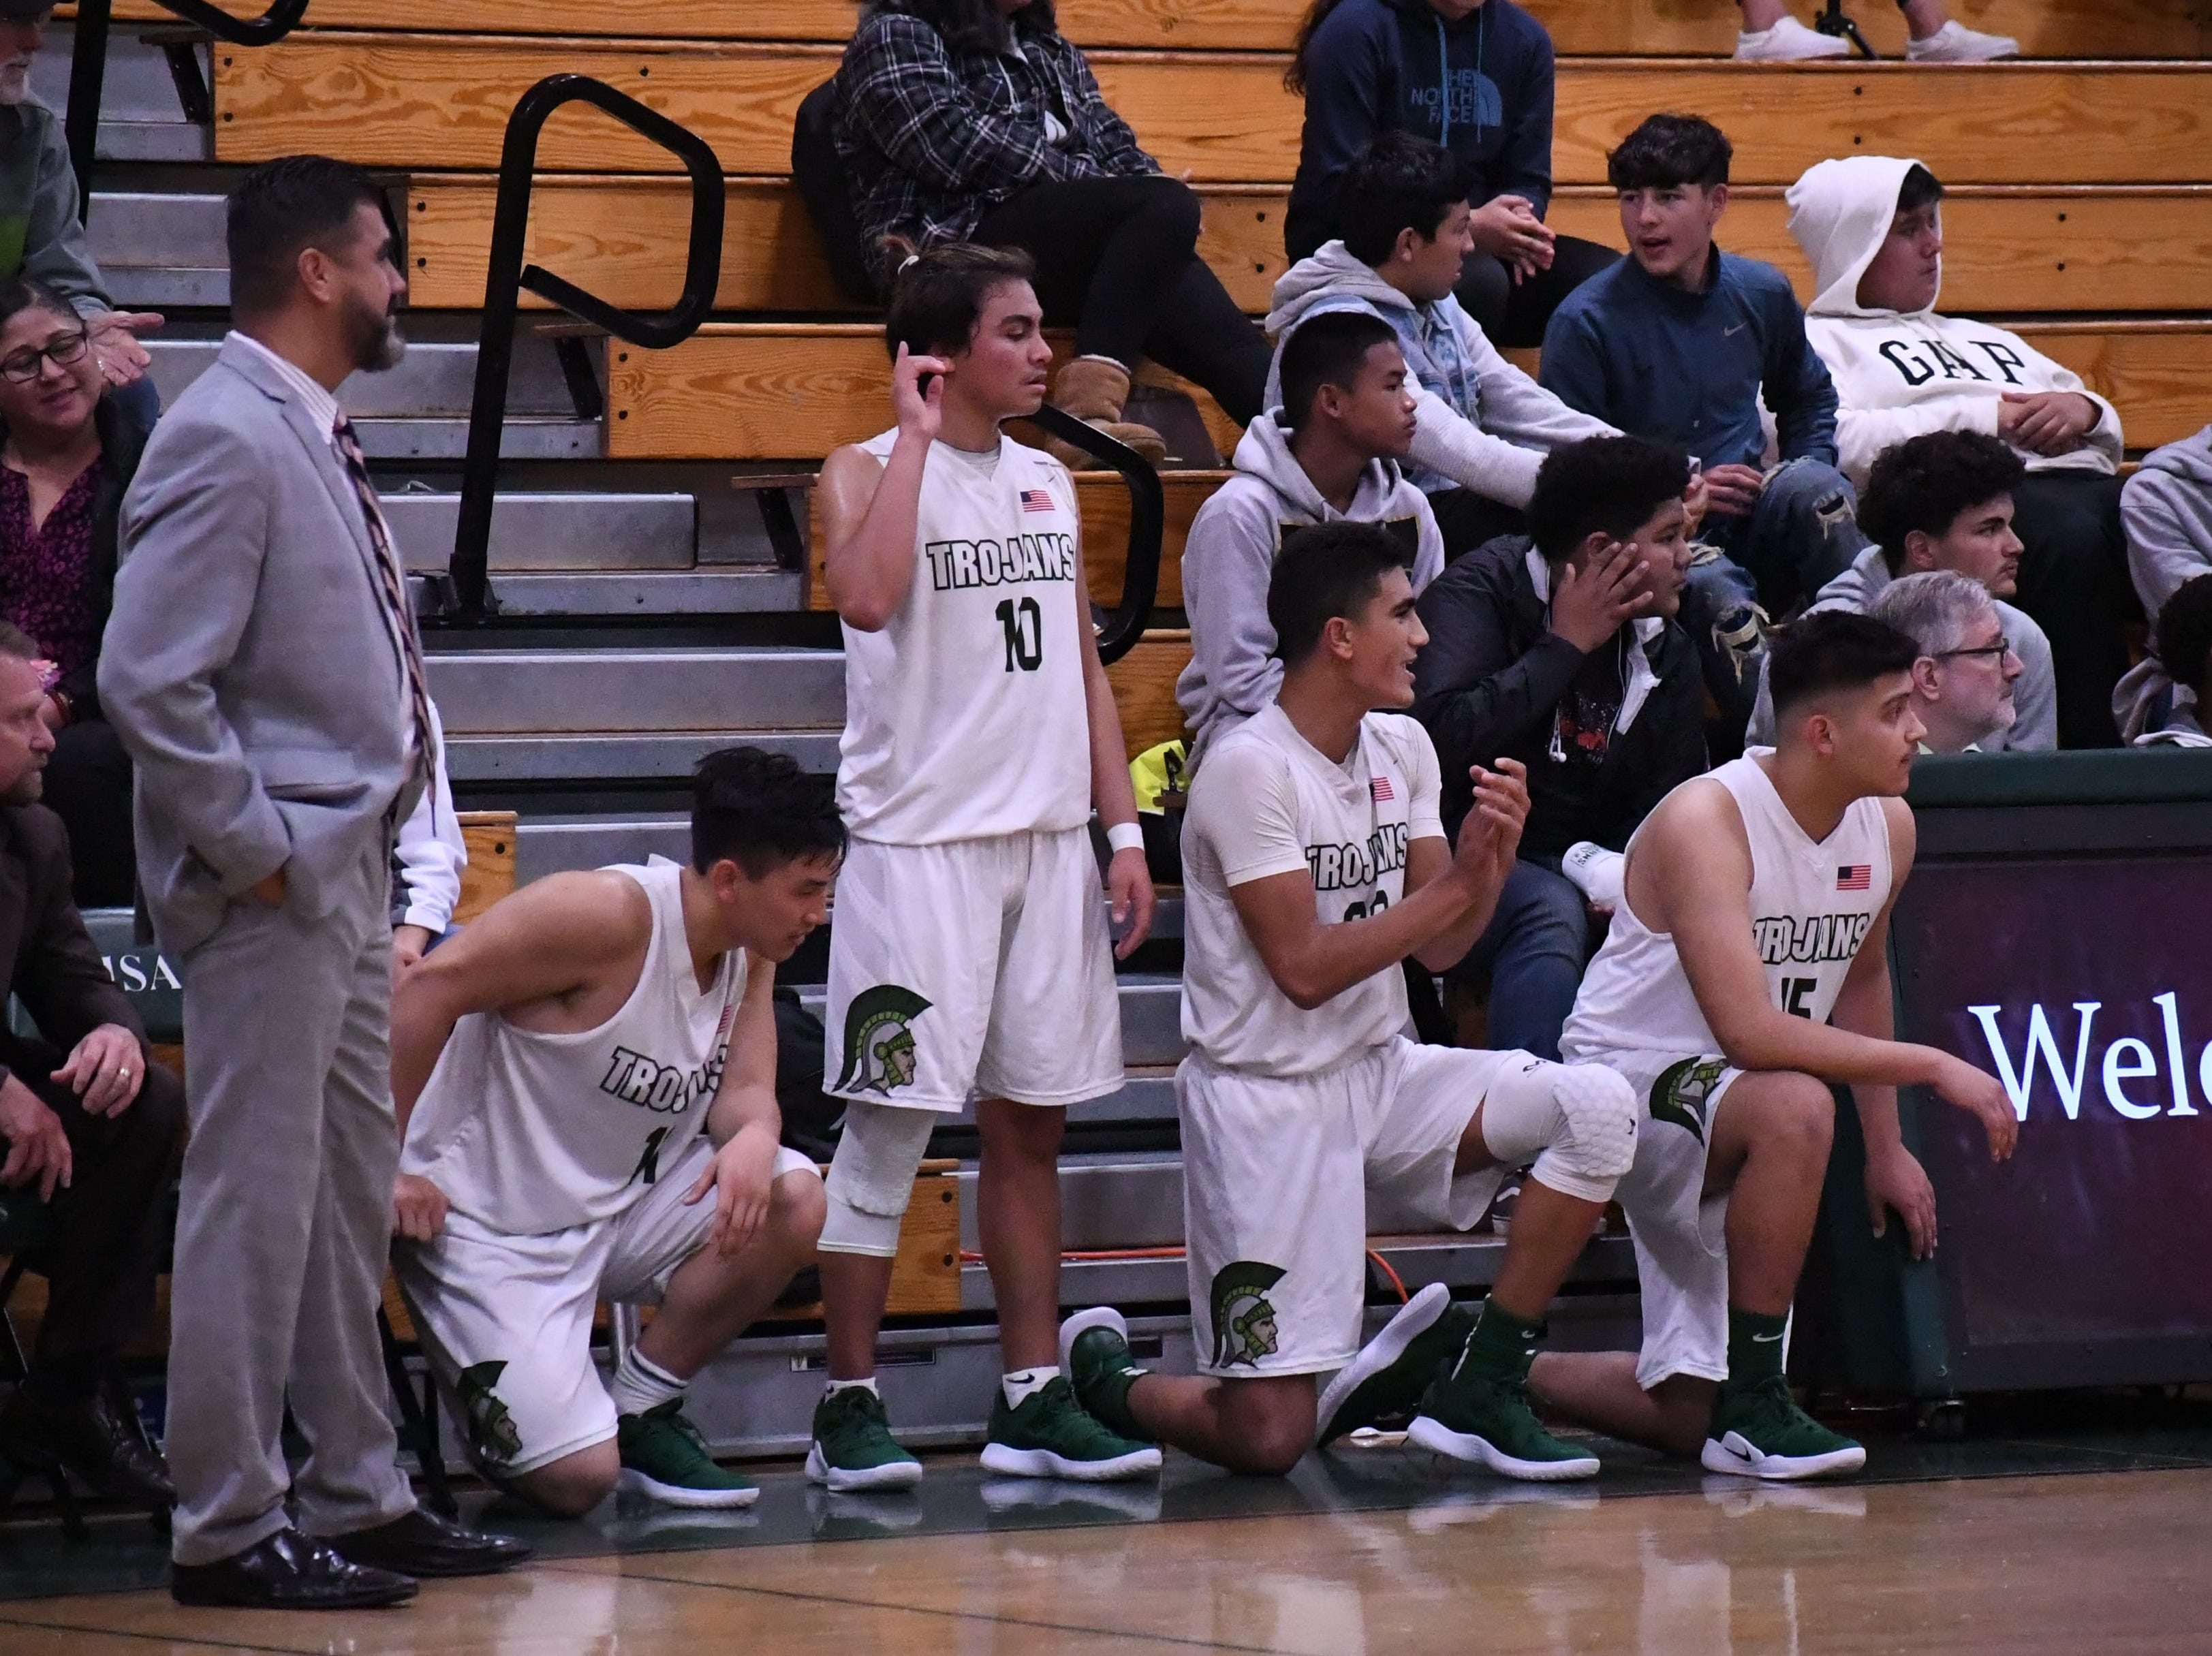 Coach Jose Gil watches as guards Joshua Vuong (11), Vincent Gonzalez (10) and Josue Gil-Silva (23) and forward Alex Maravillo (15) wait to check in to the game.